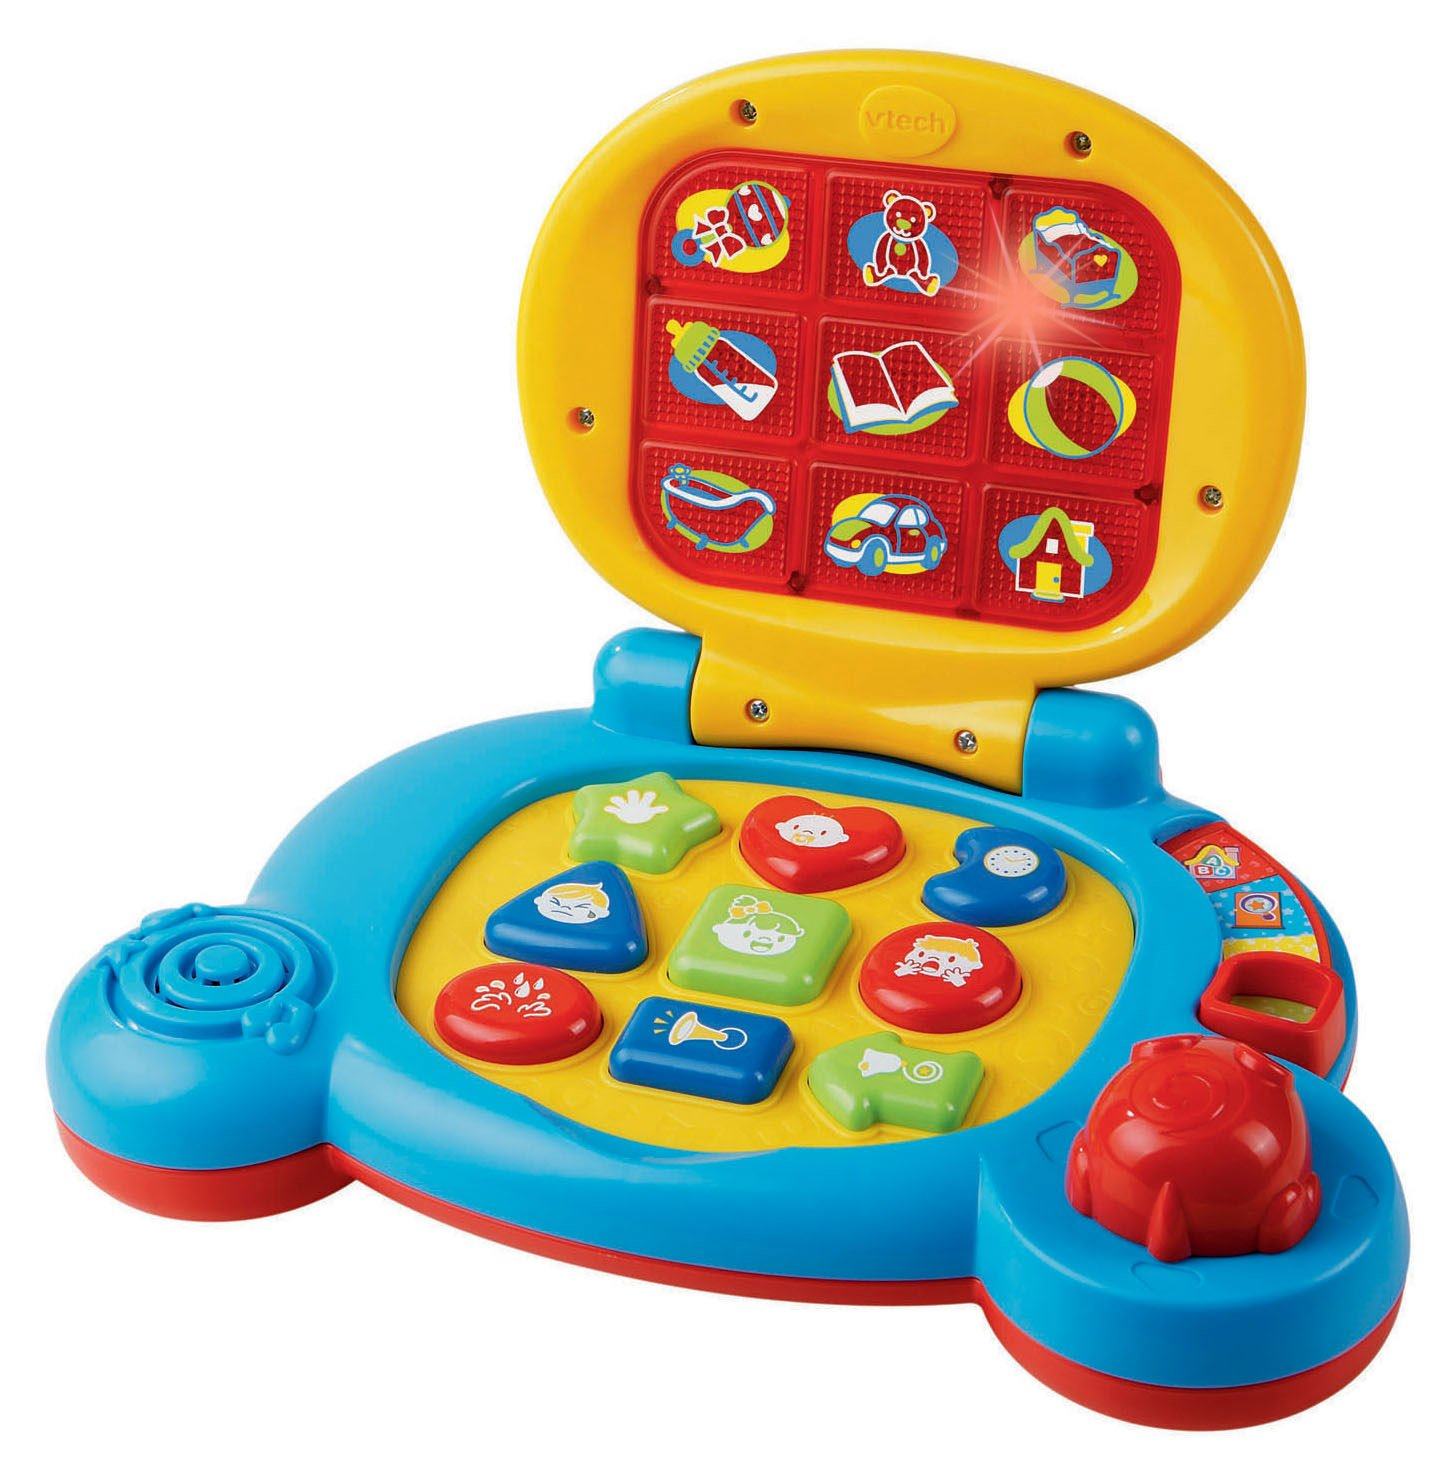 Unique Vtech Educational toys Pictures